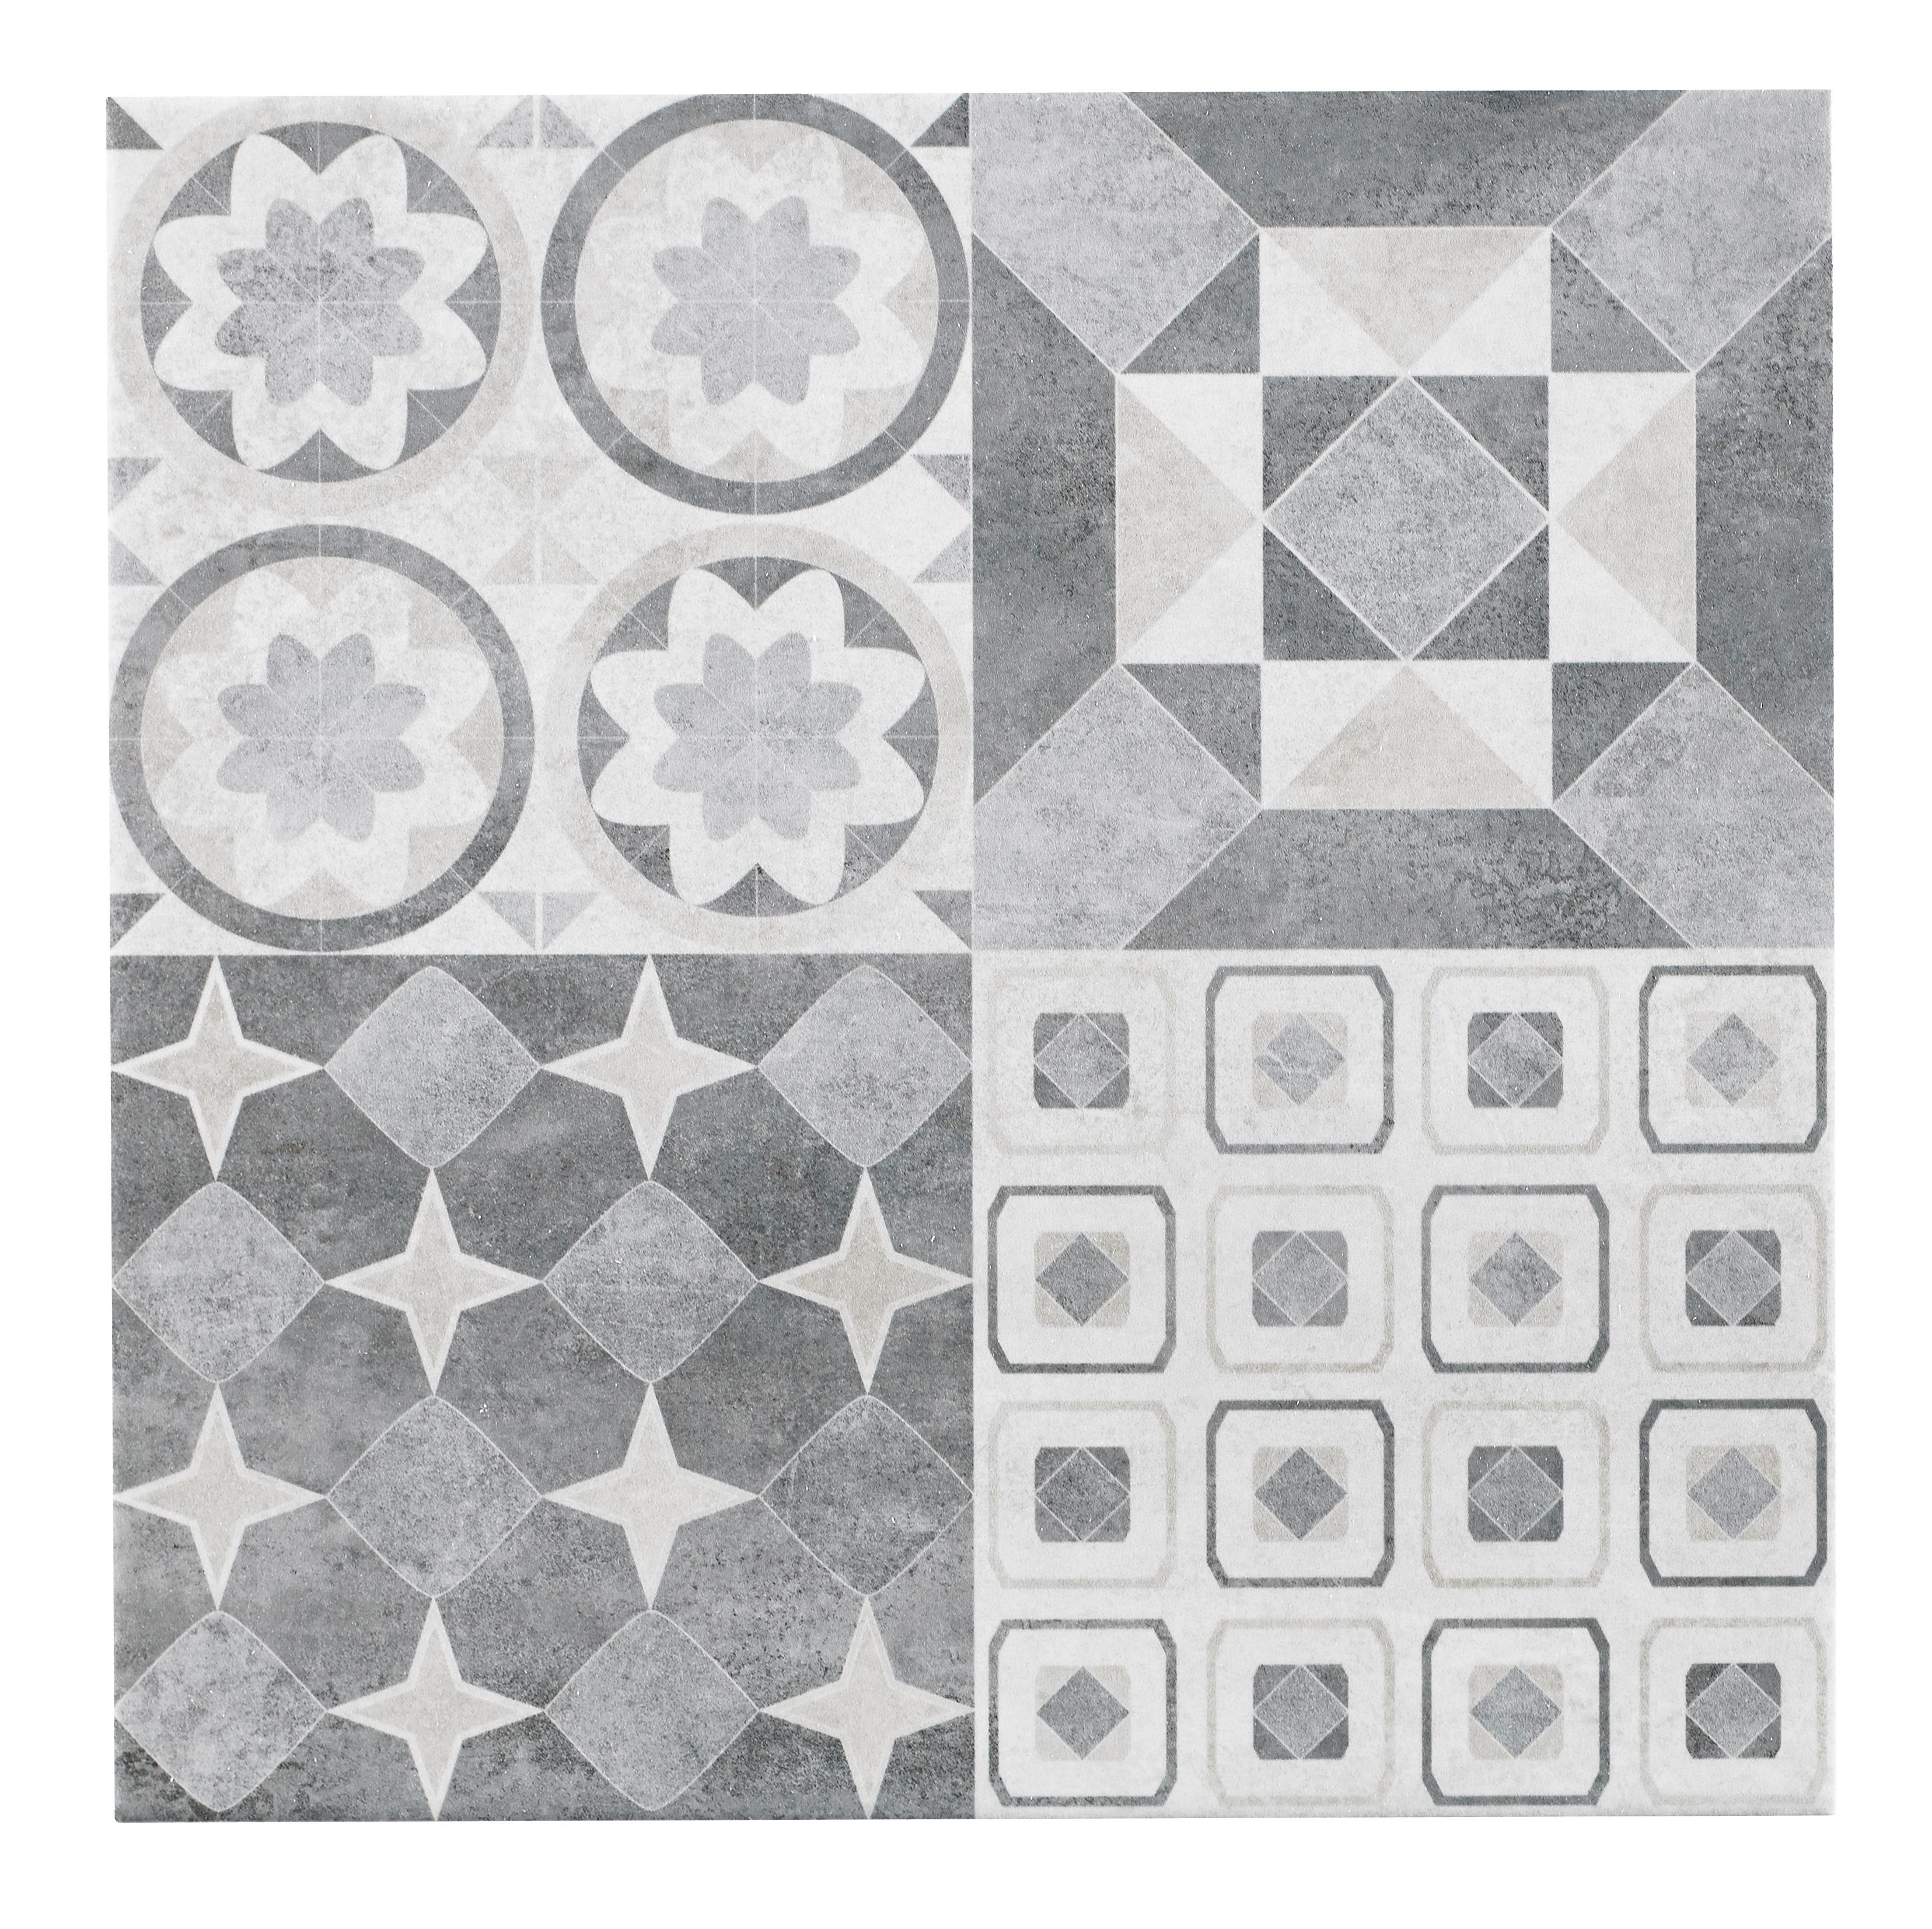 Lofthouse Grey Stone Effect Patchwork Ceramic Wall Floor Tile